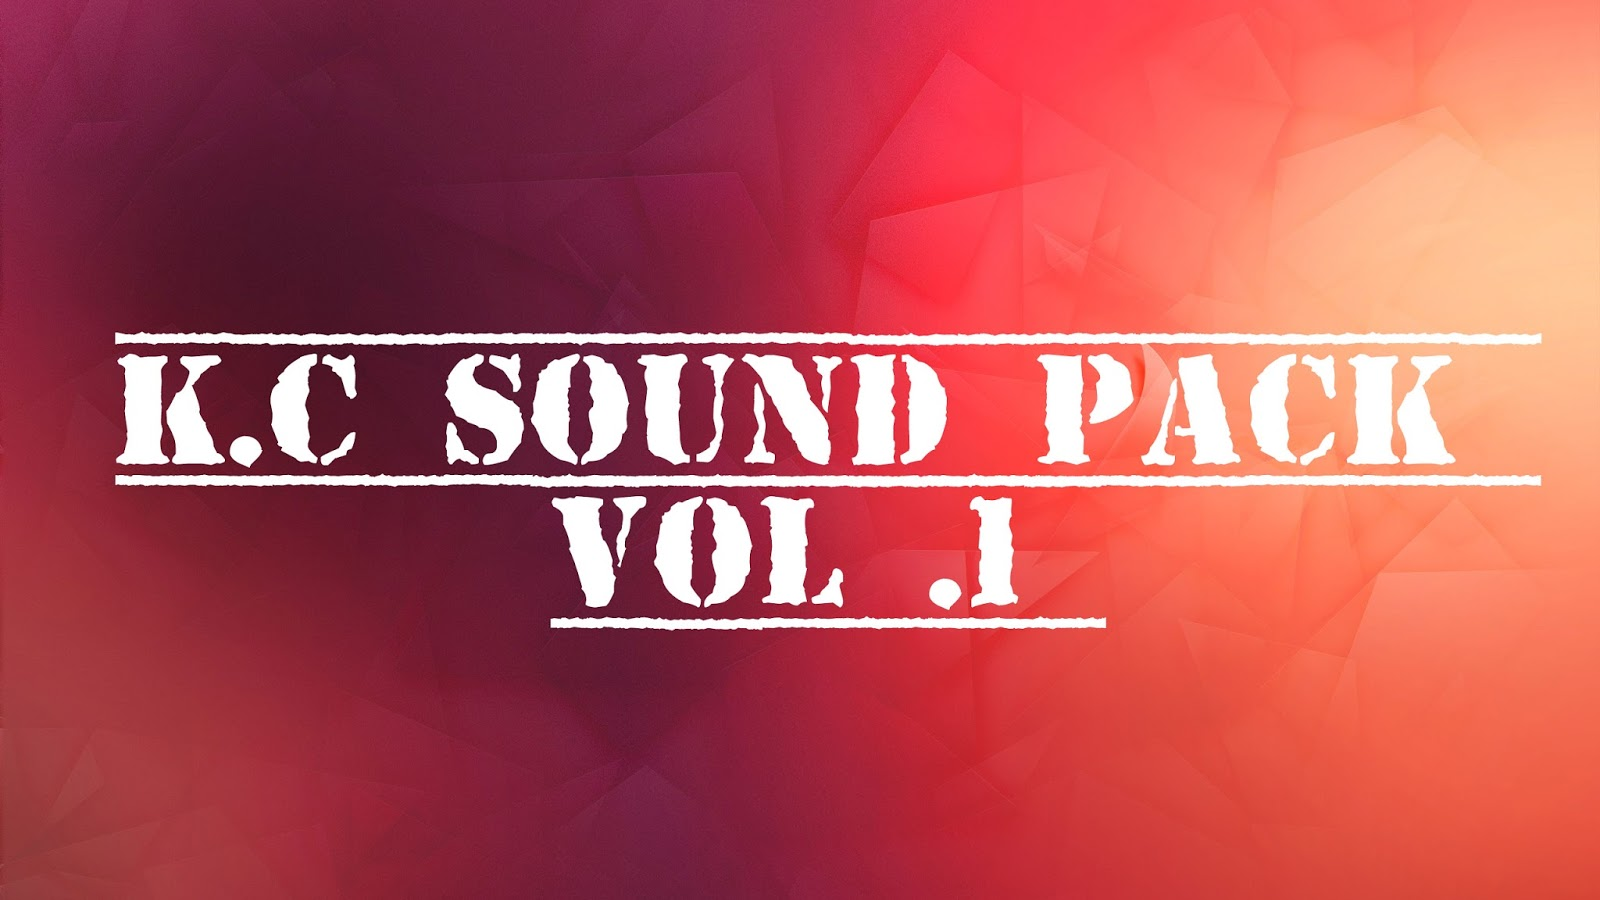 K C Sound Pack Vol 1 ( Torrent ) - DeejayTon